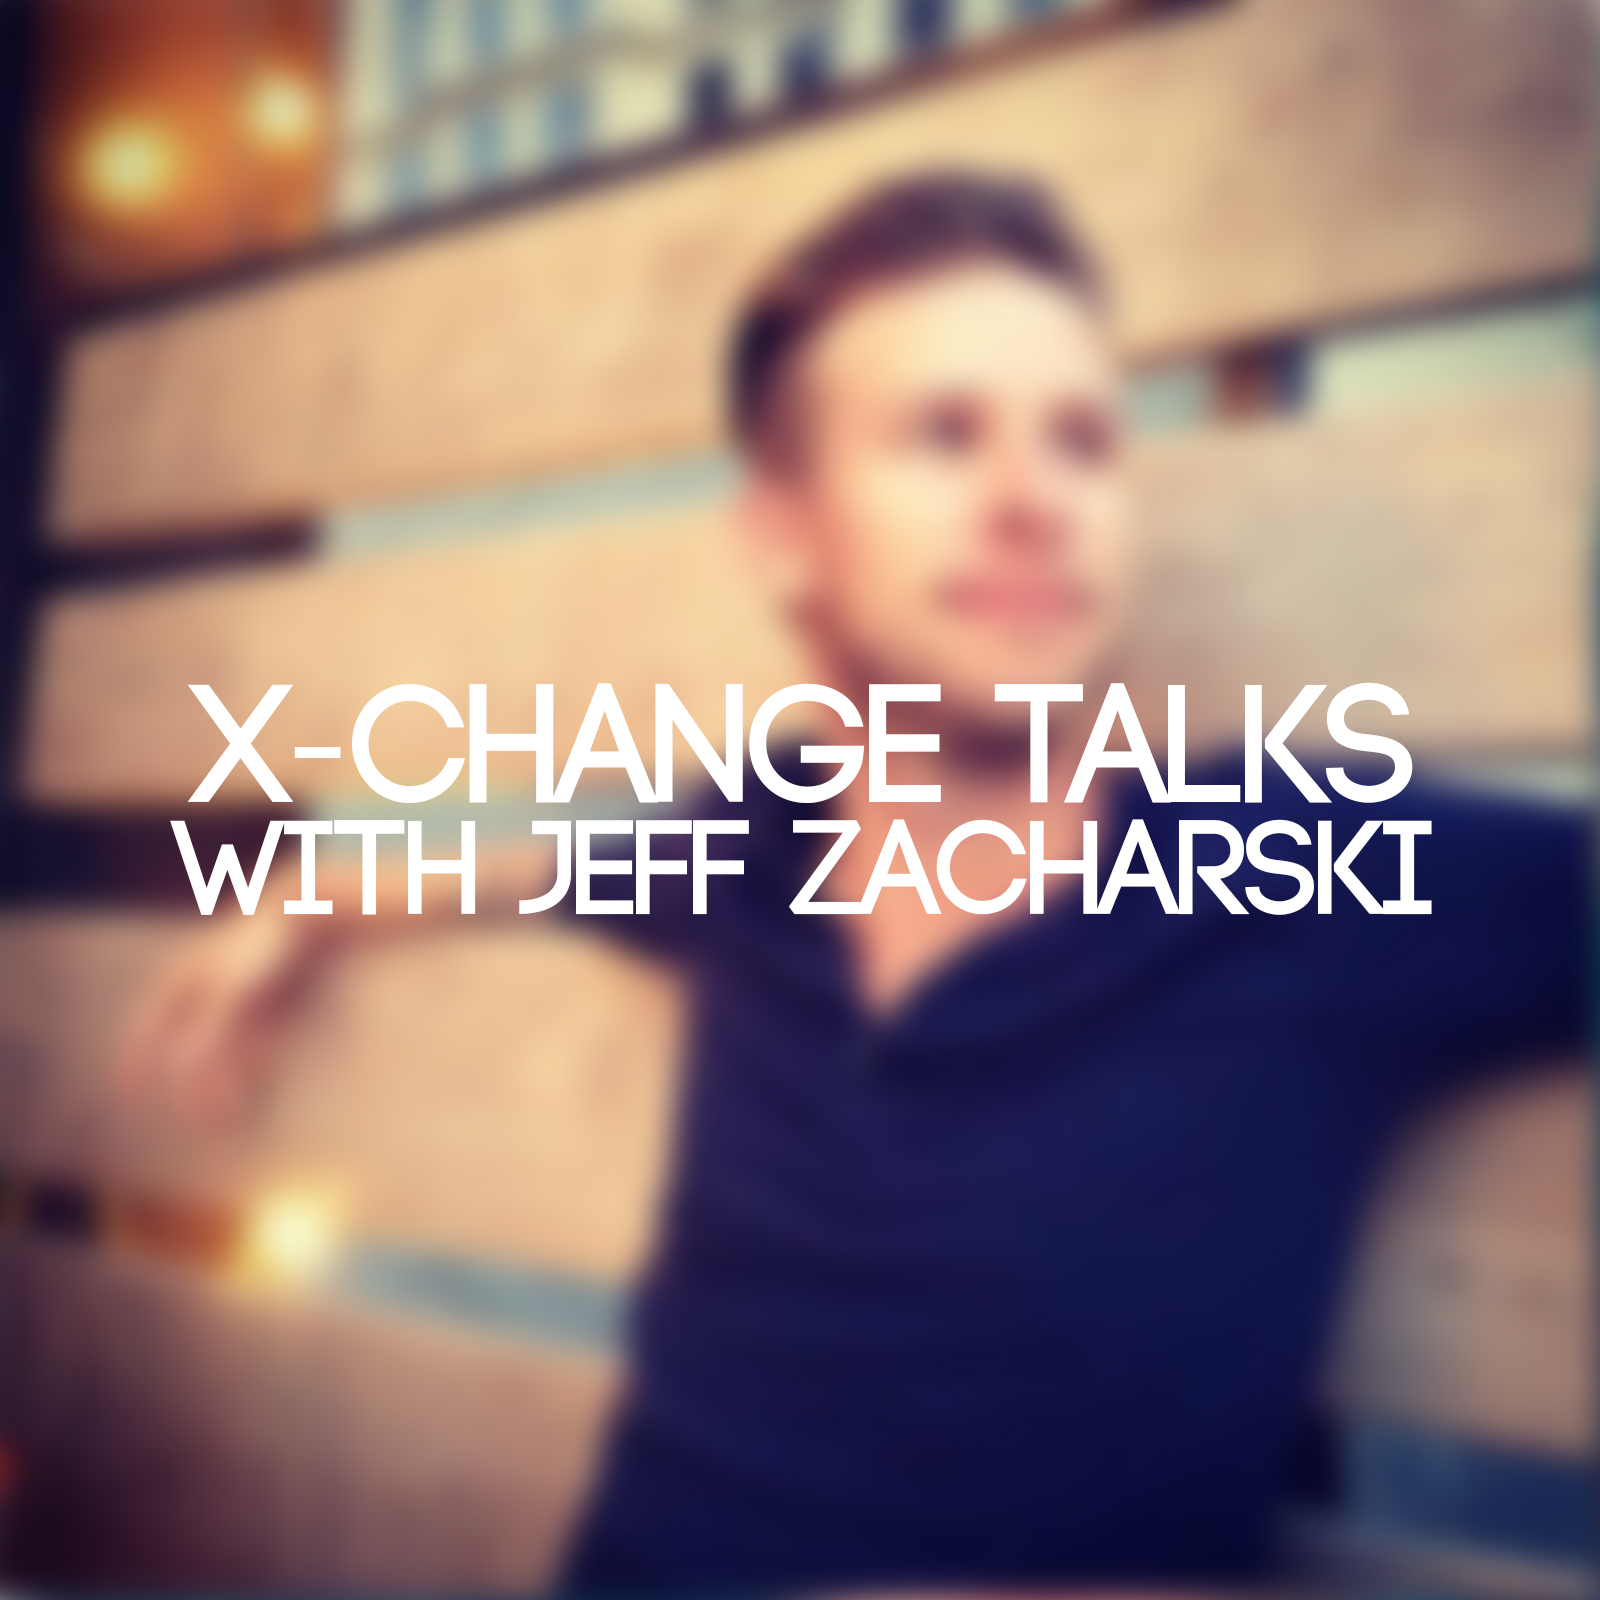 X-Change Talks with Jeff Zacharski